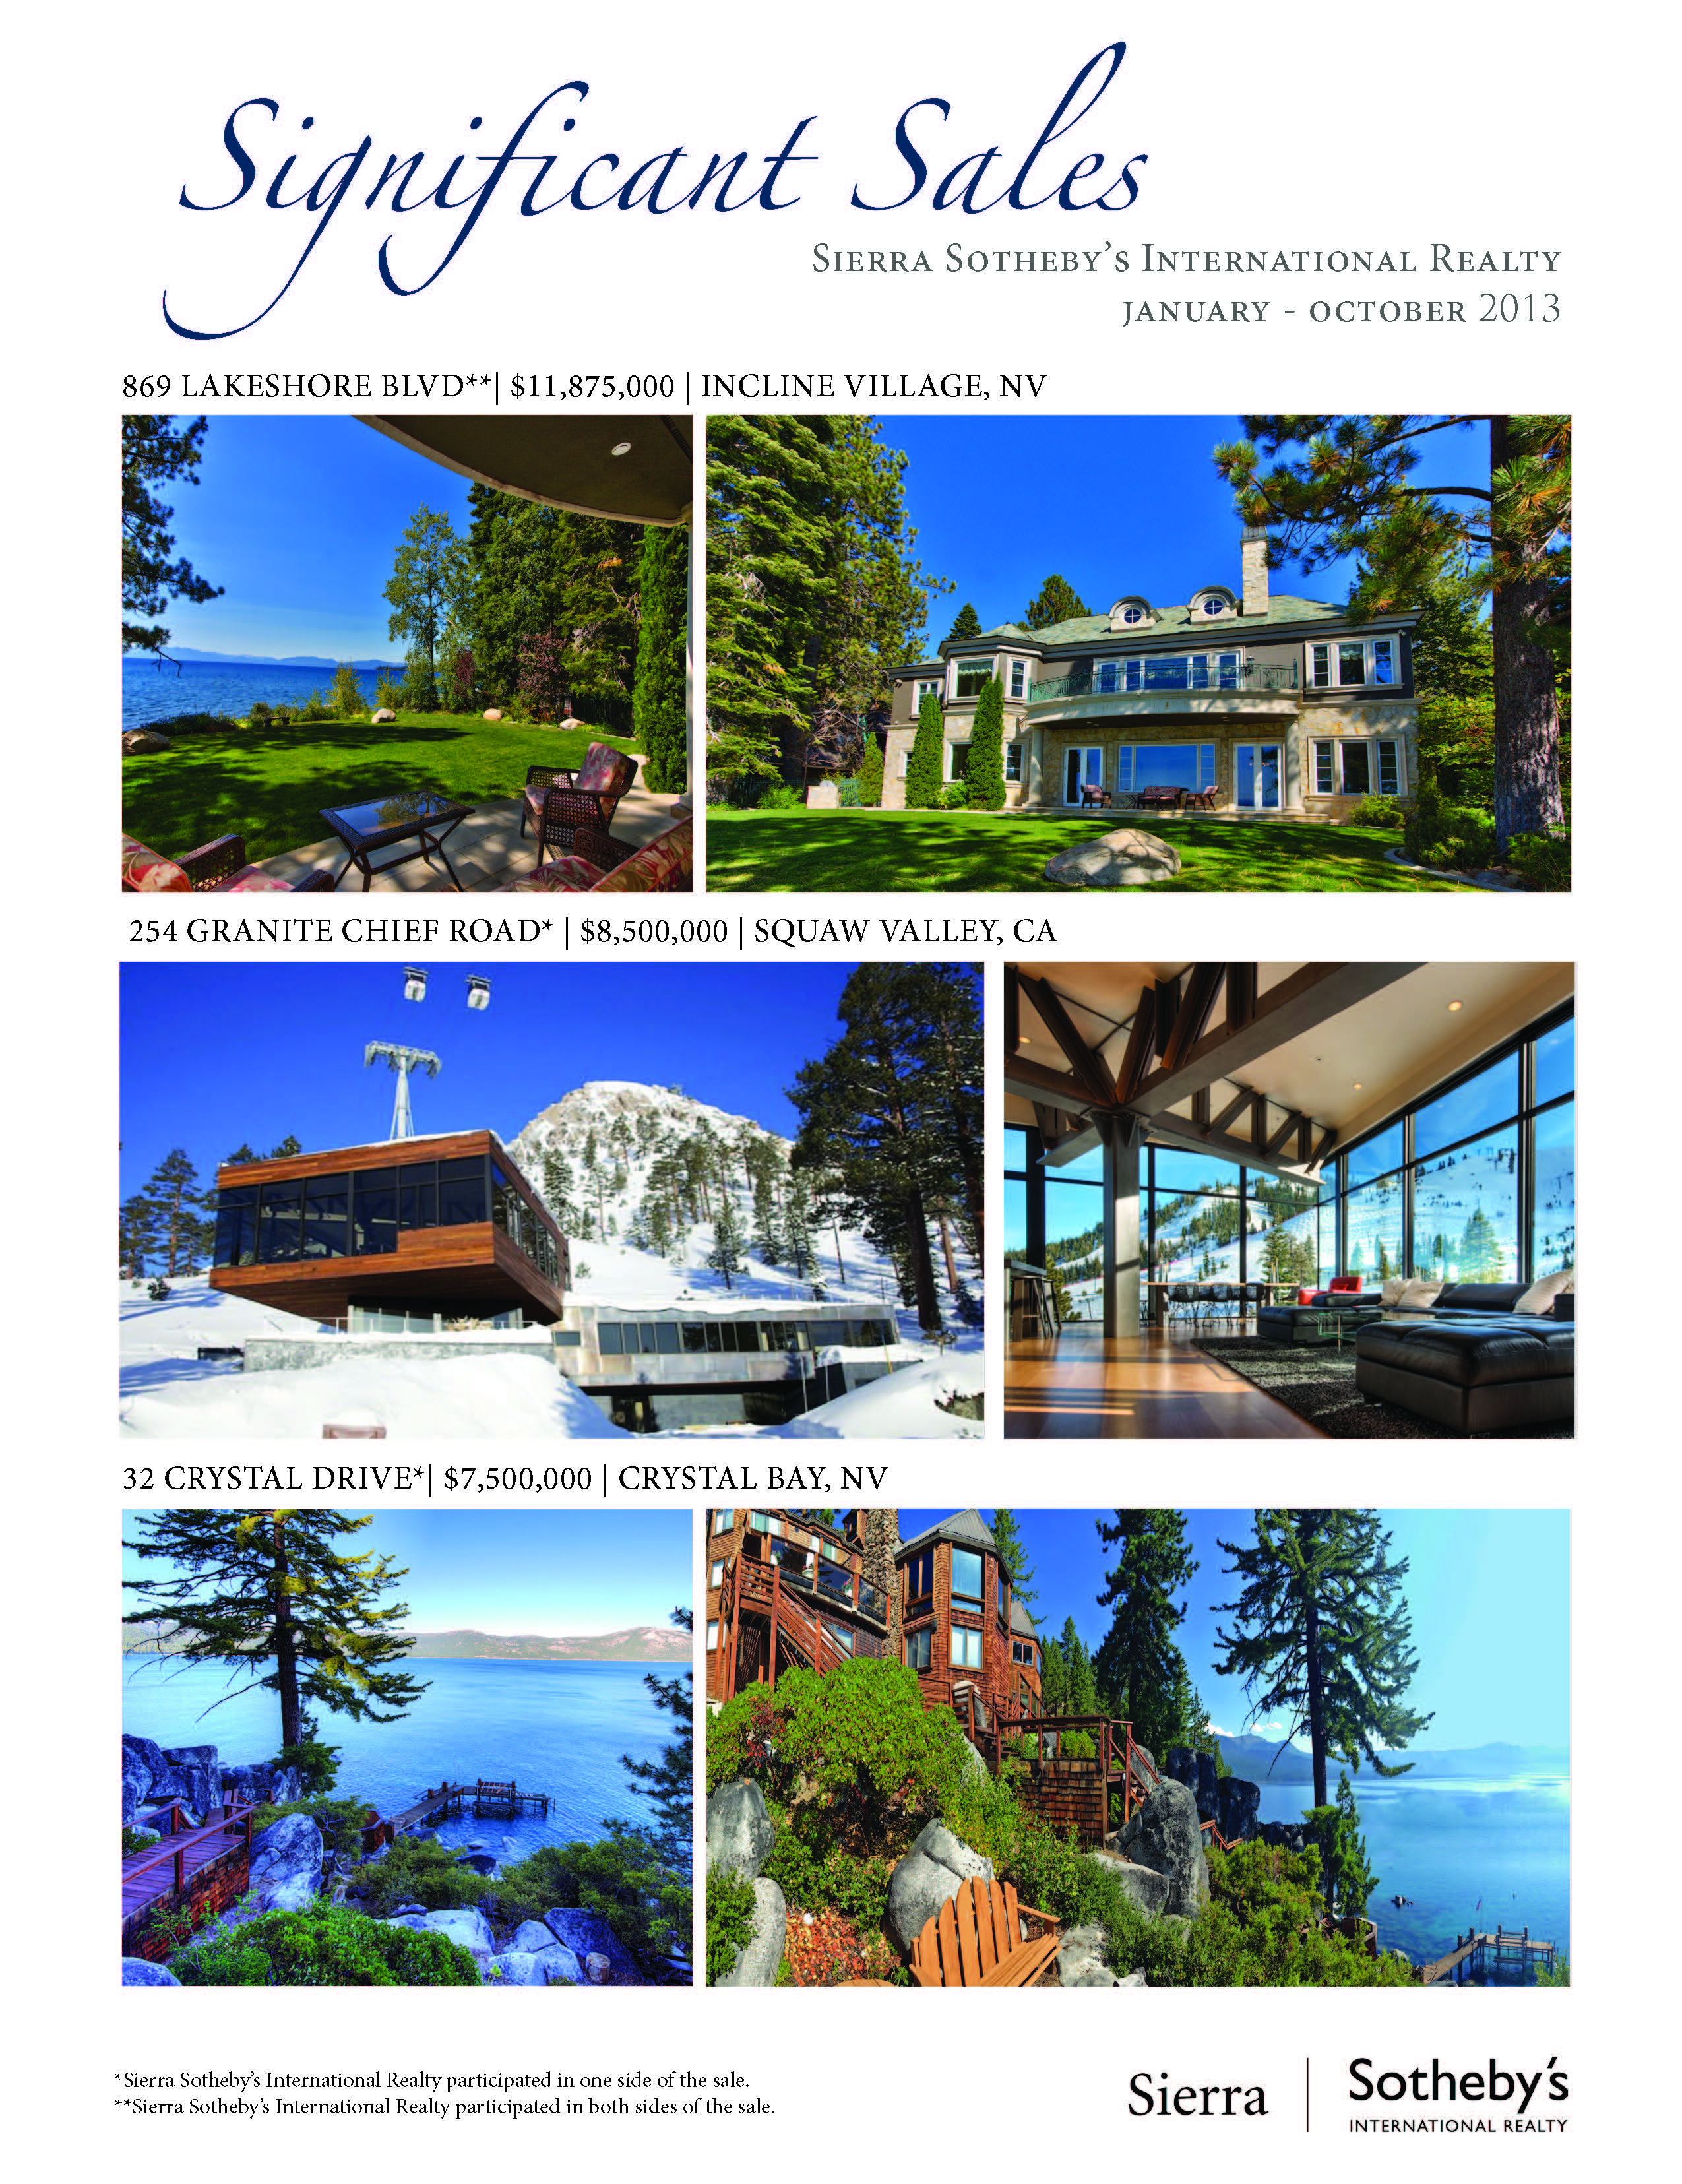 Sierra Sotheby's International Realty_Significant Sales_Image